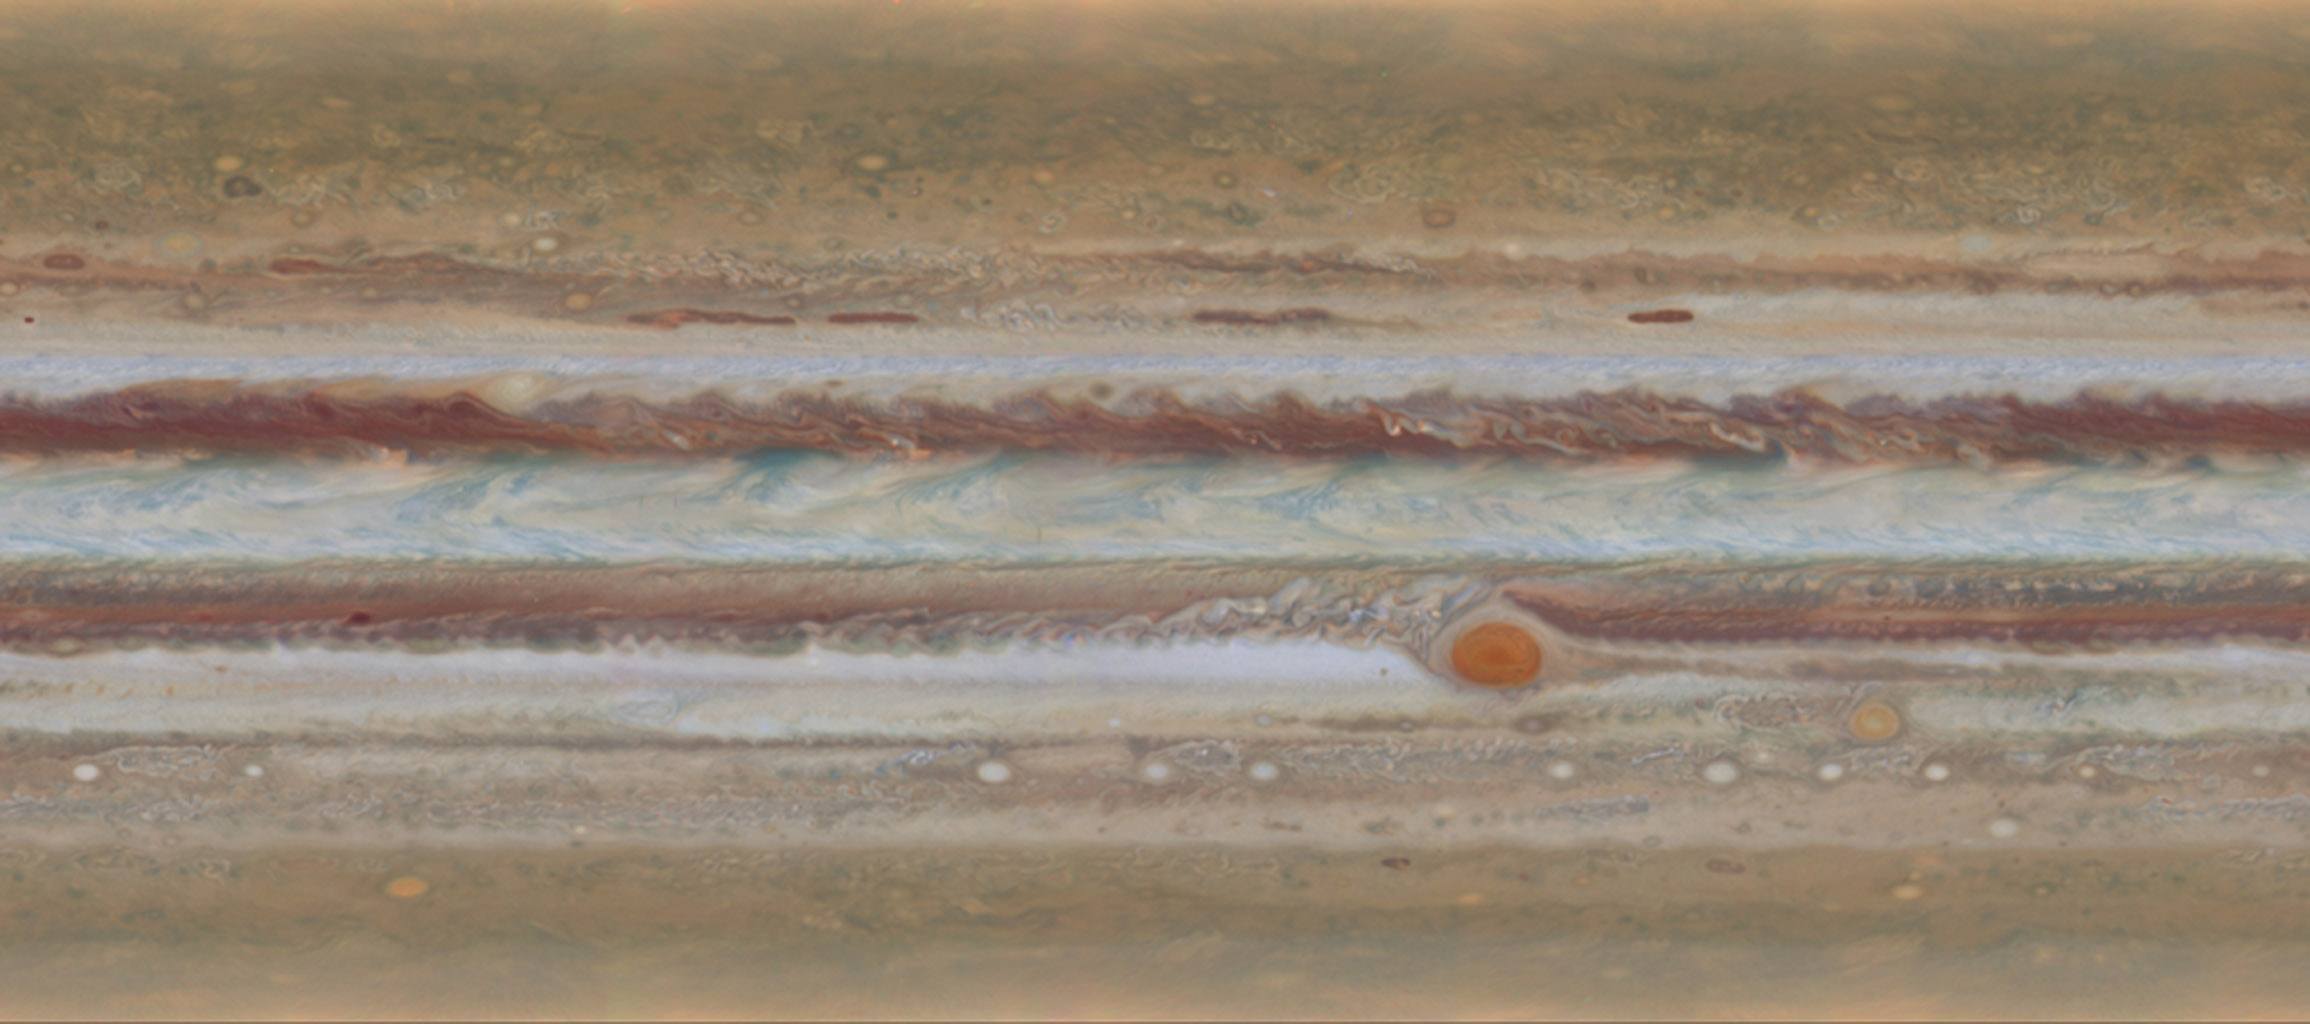 Space Images Spinning Jupiter and Global Map